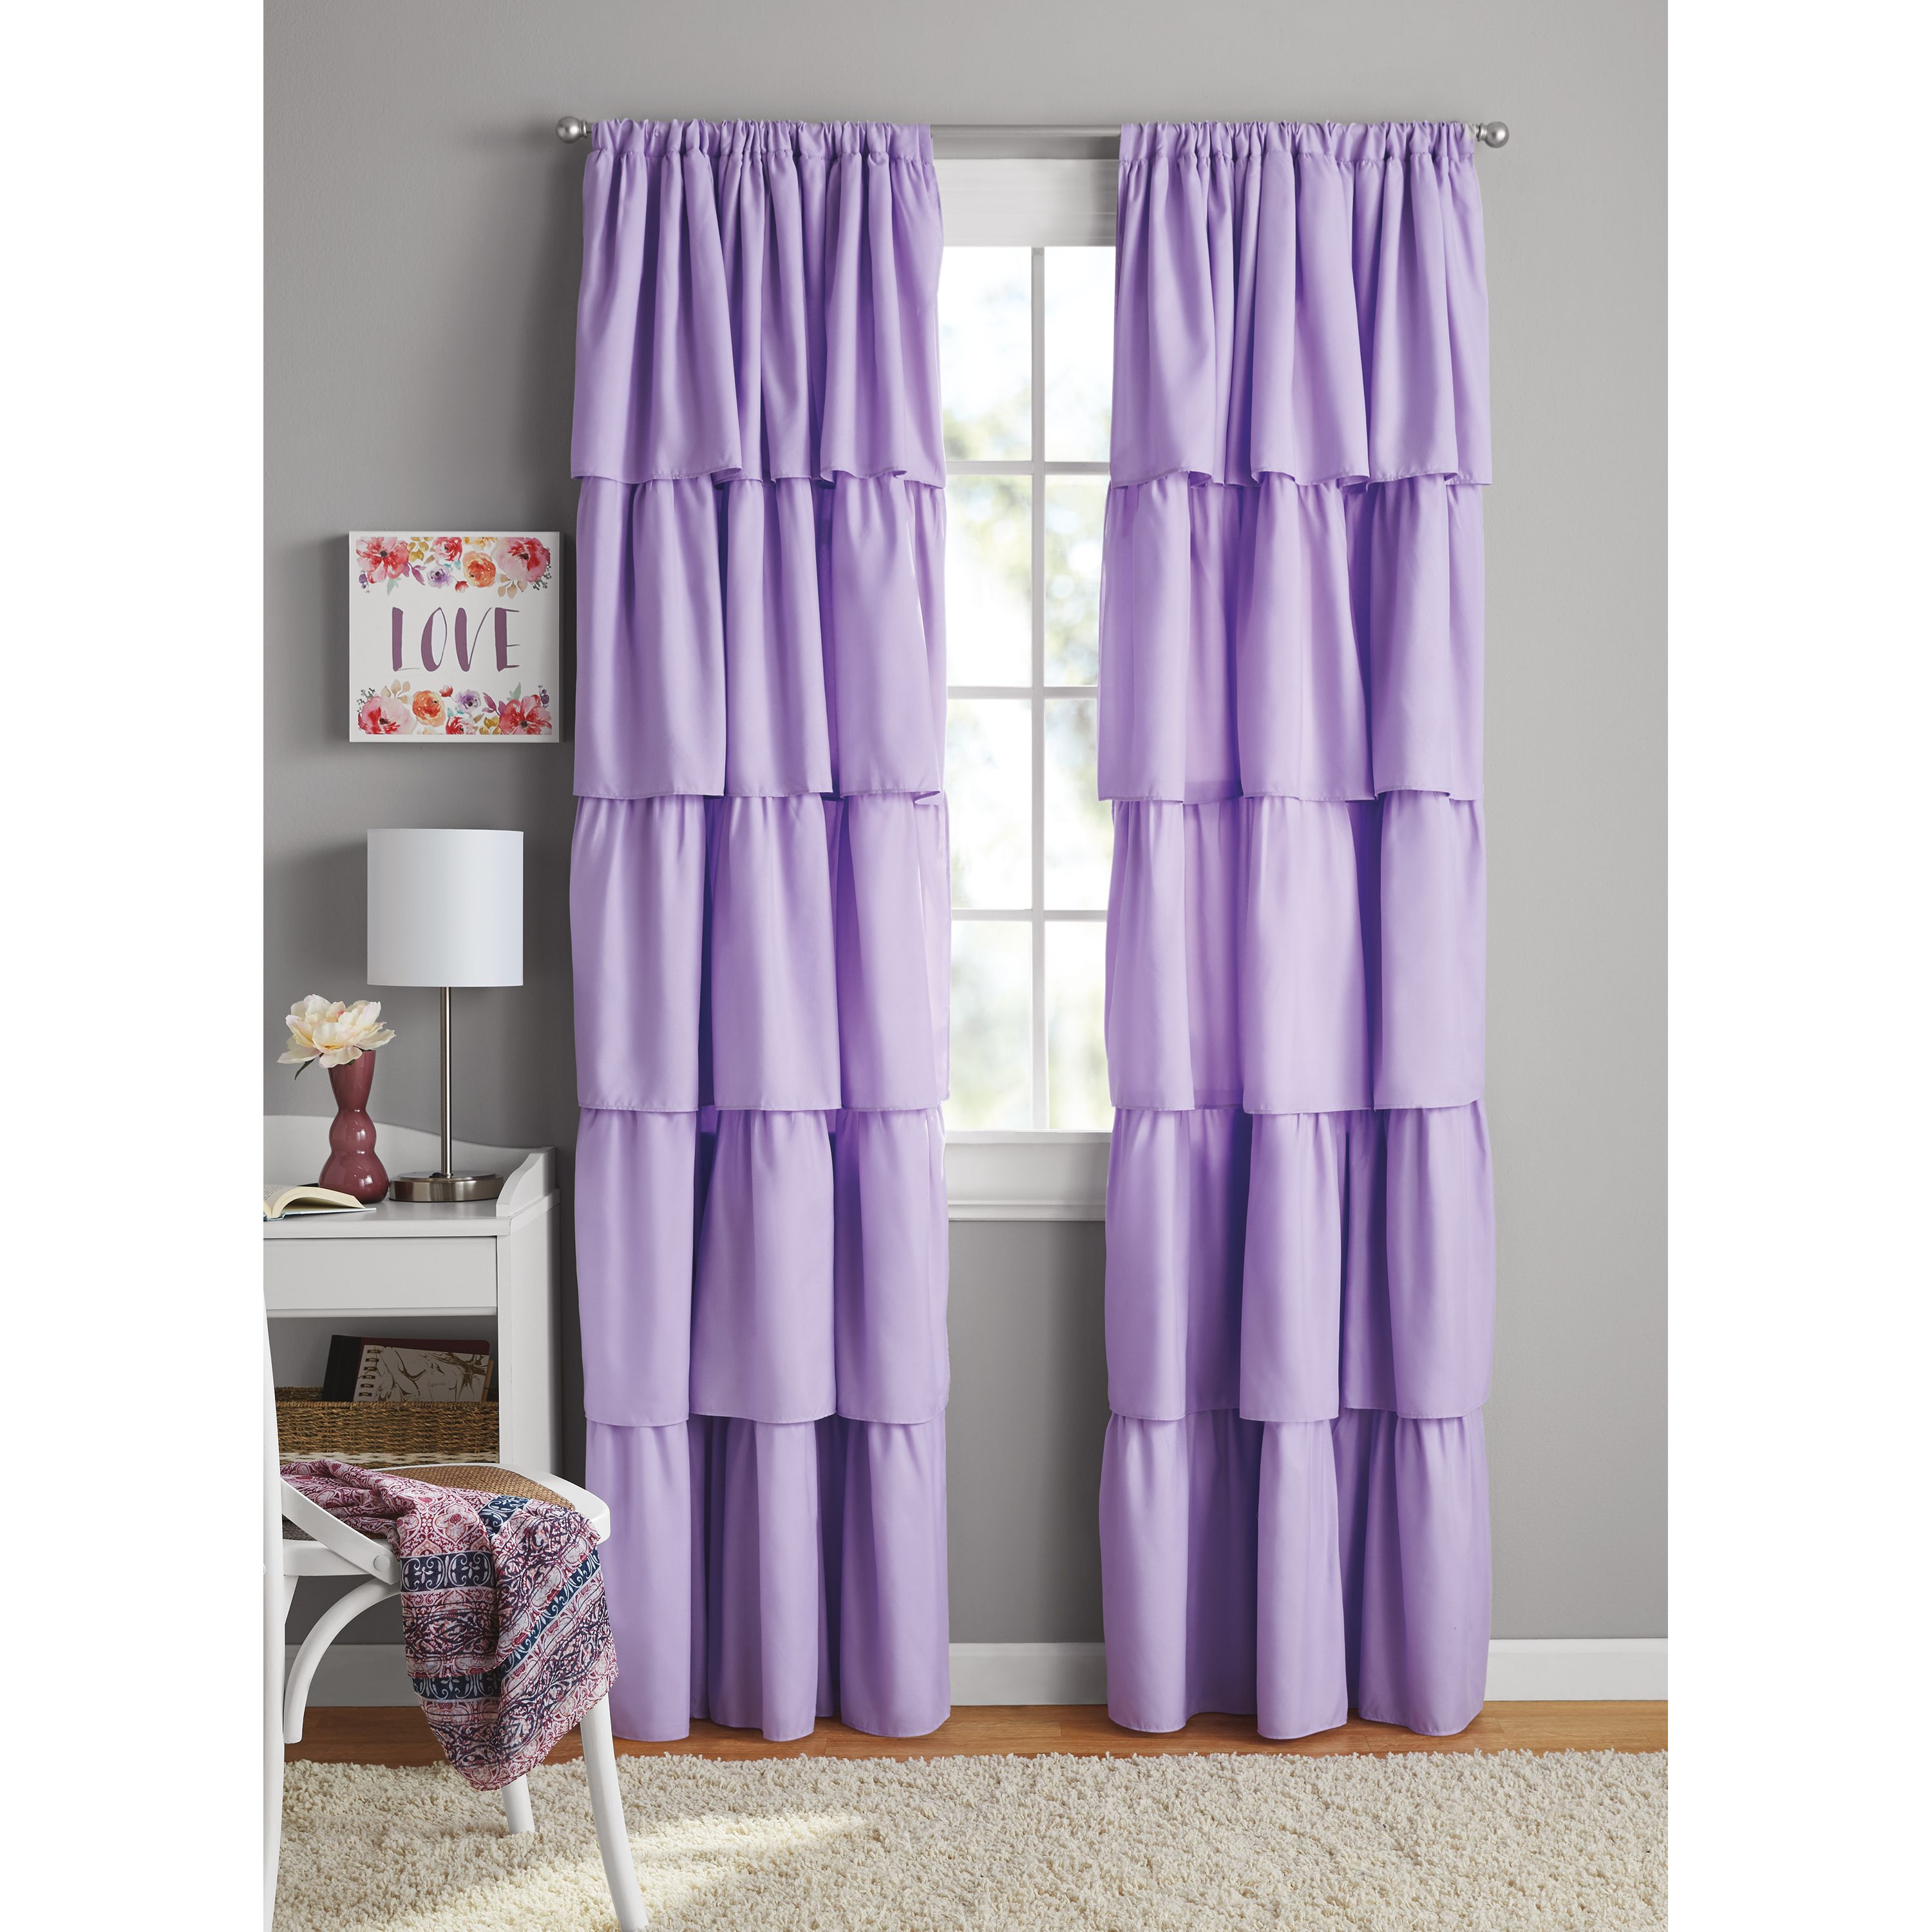 Your Zone Ruffle Girls Bedroom Single Curtain Panel Walmart Com In 2020 Girls Bedroom Curtains Curtains Bedroom Girls Bedroom